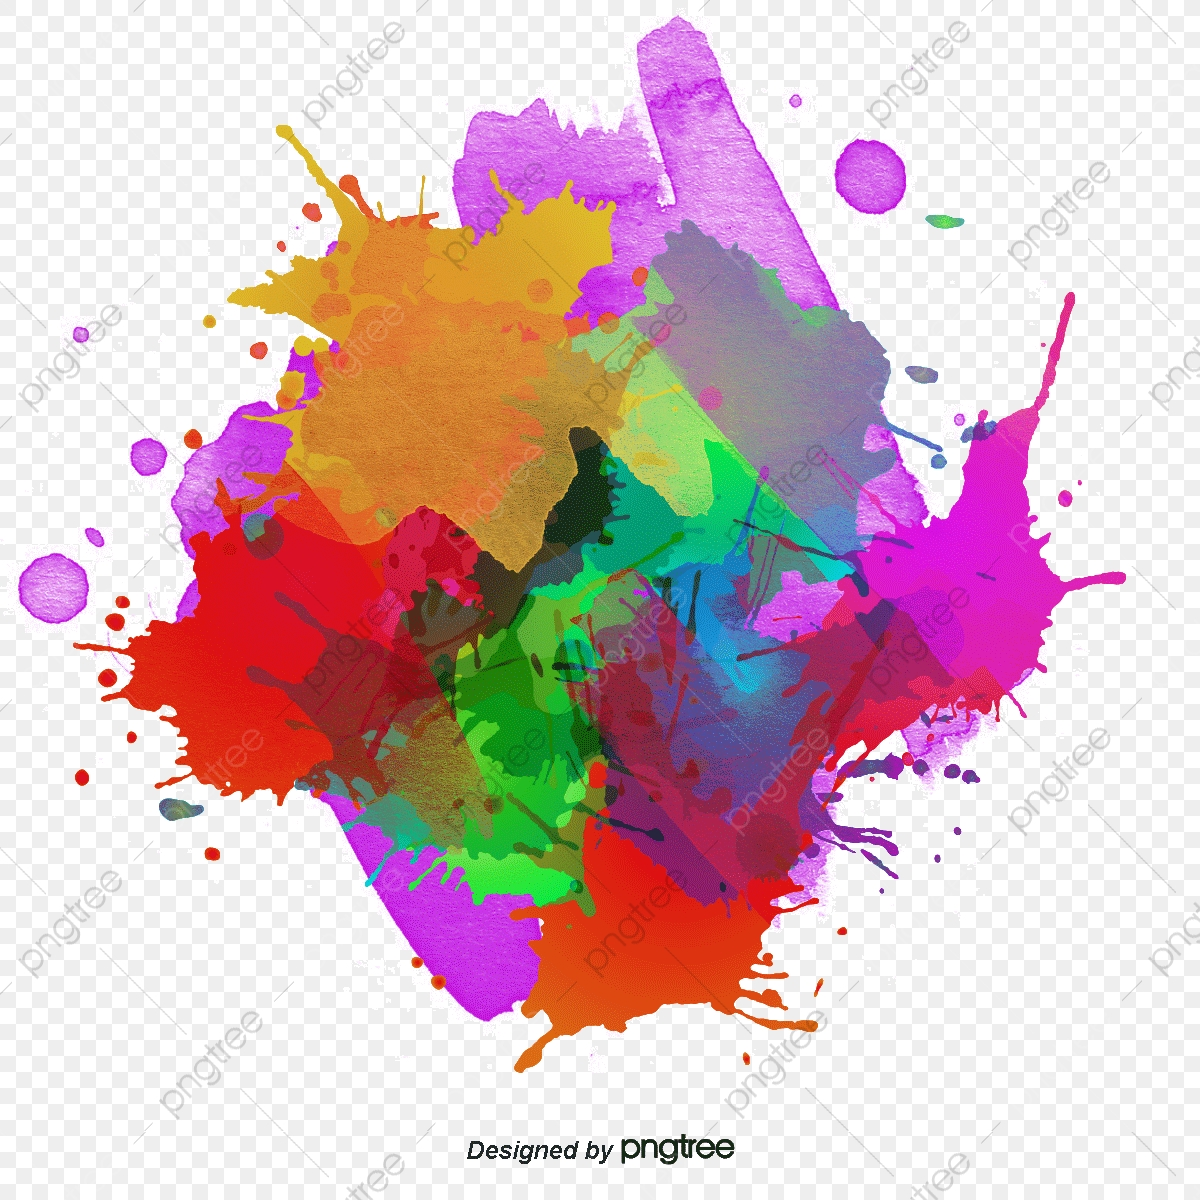 Round Color Ink Graffiti, Explosion, Color, Ink Jet PNG and Vector.